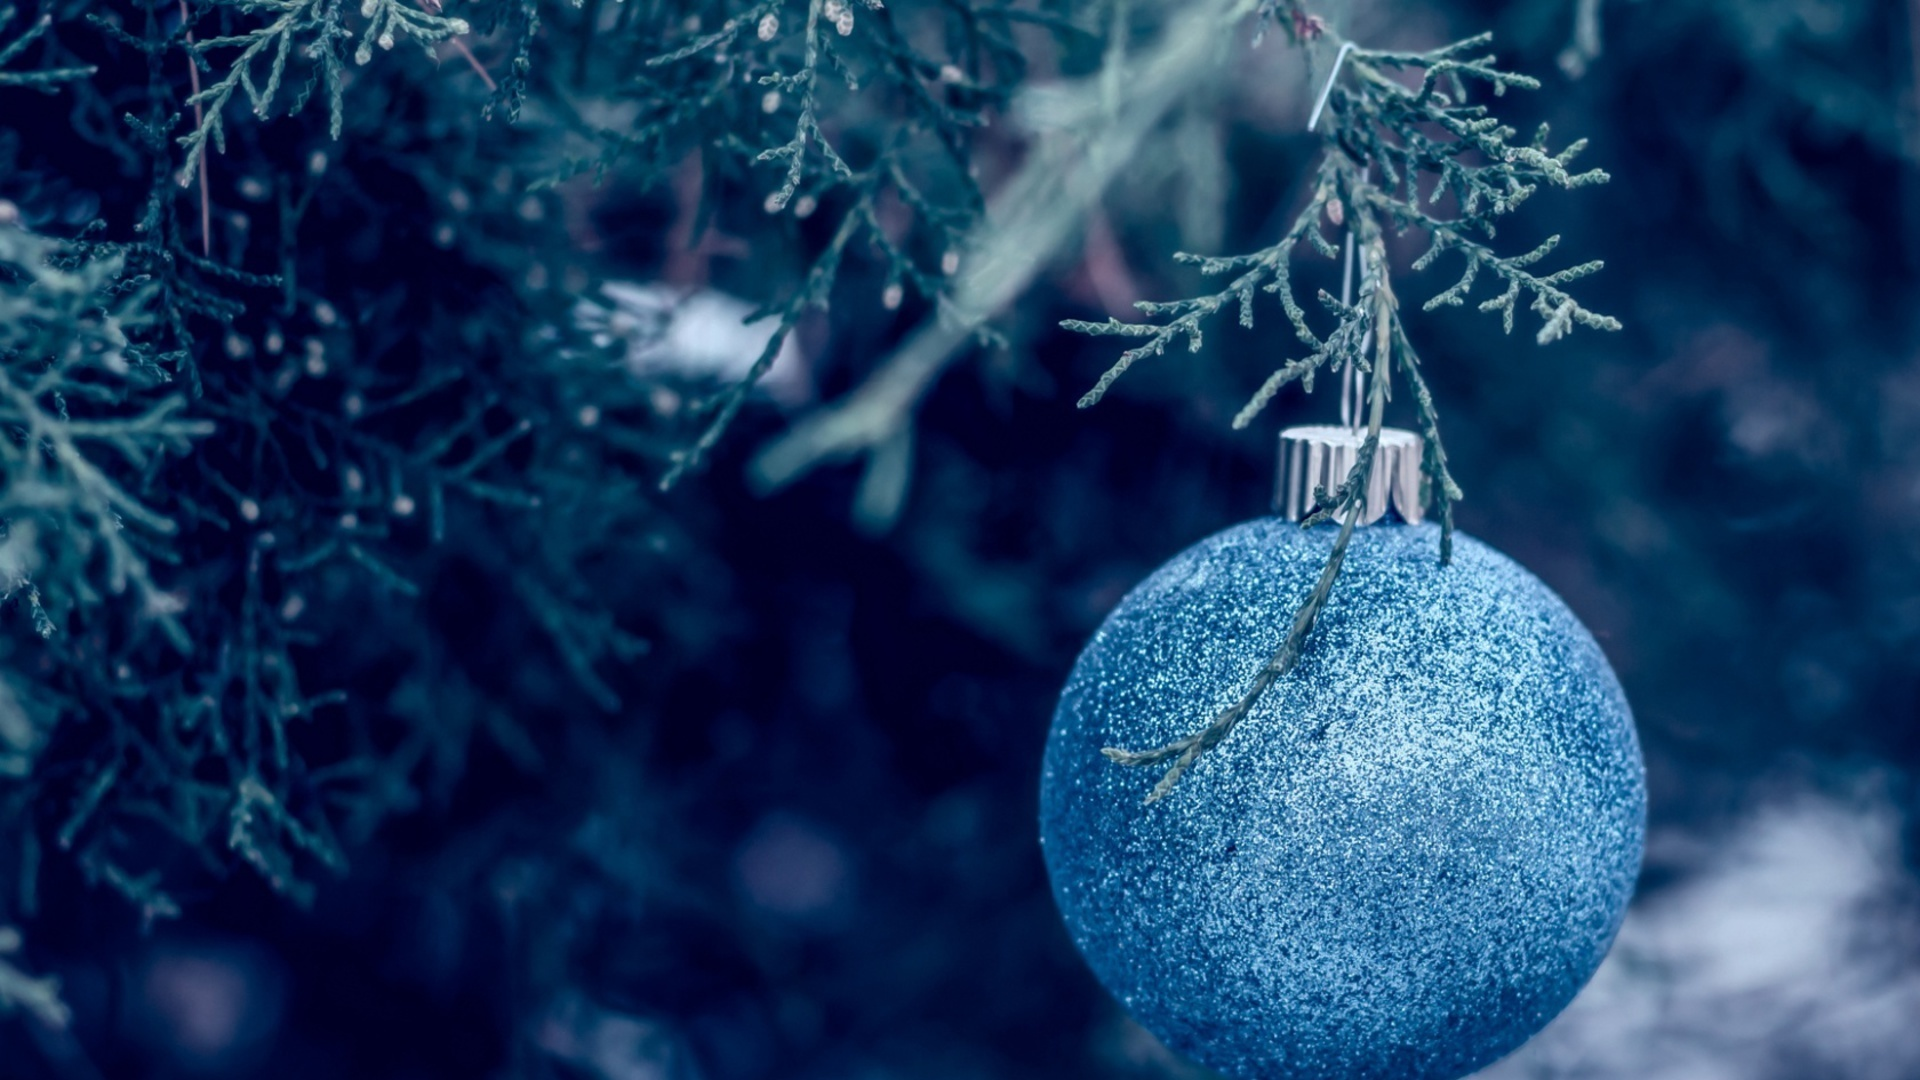 New Year Wallpapers ball tree decorations wallpaper   1920x1080 ...